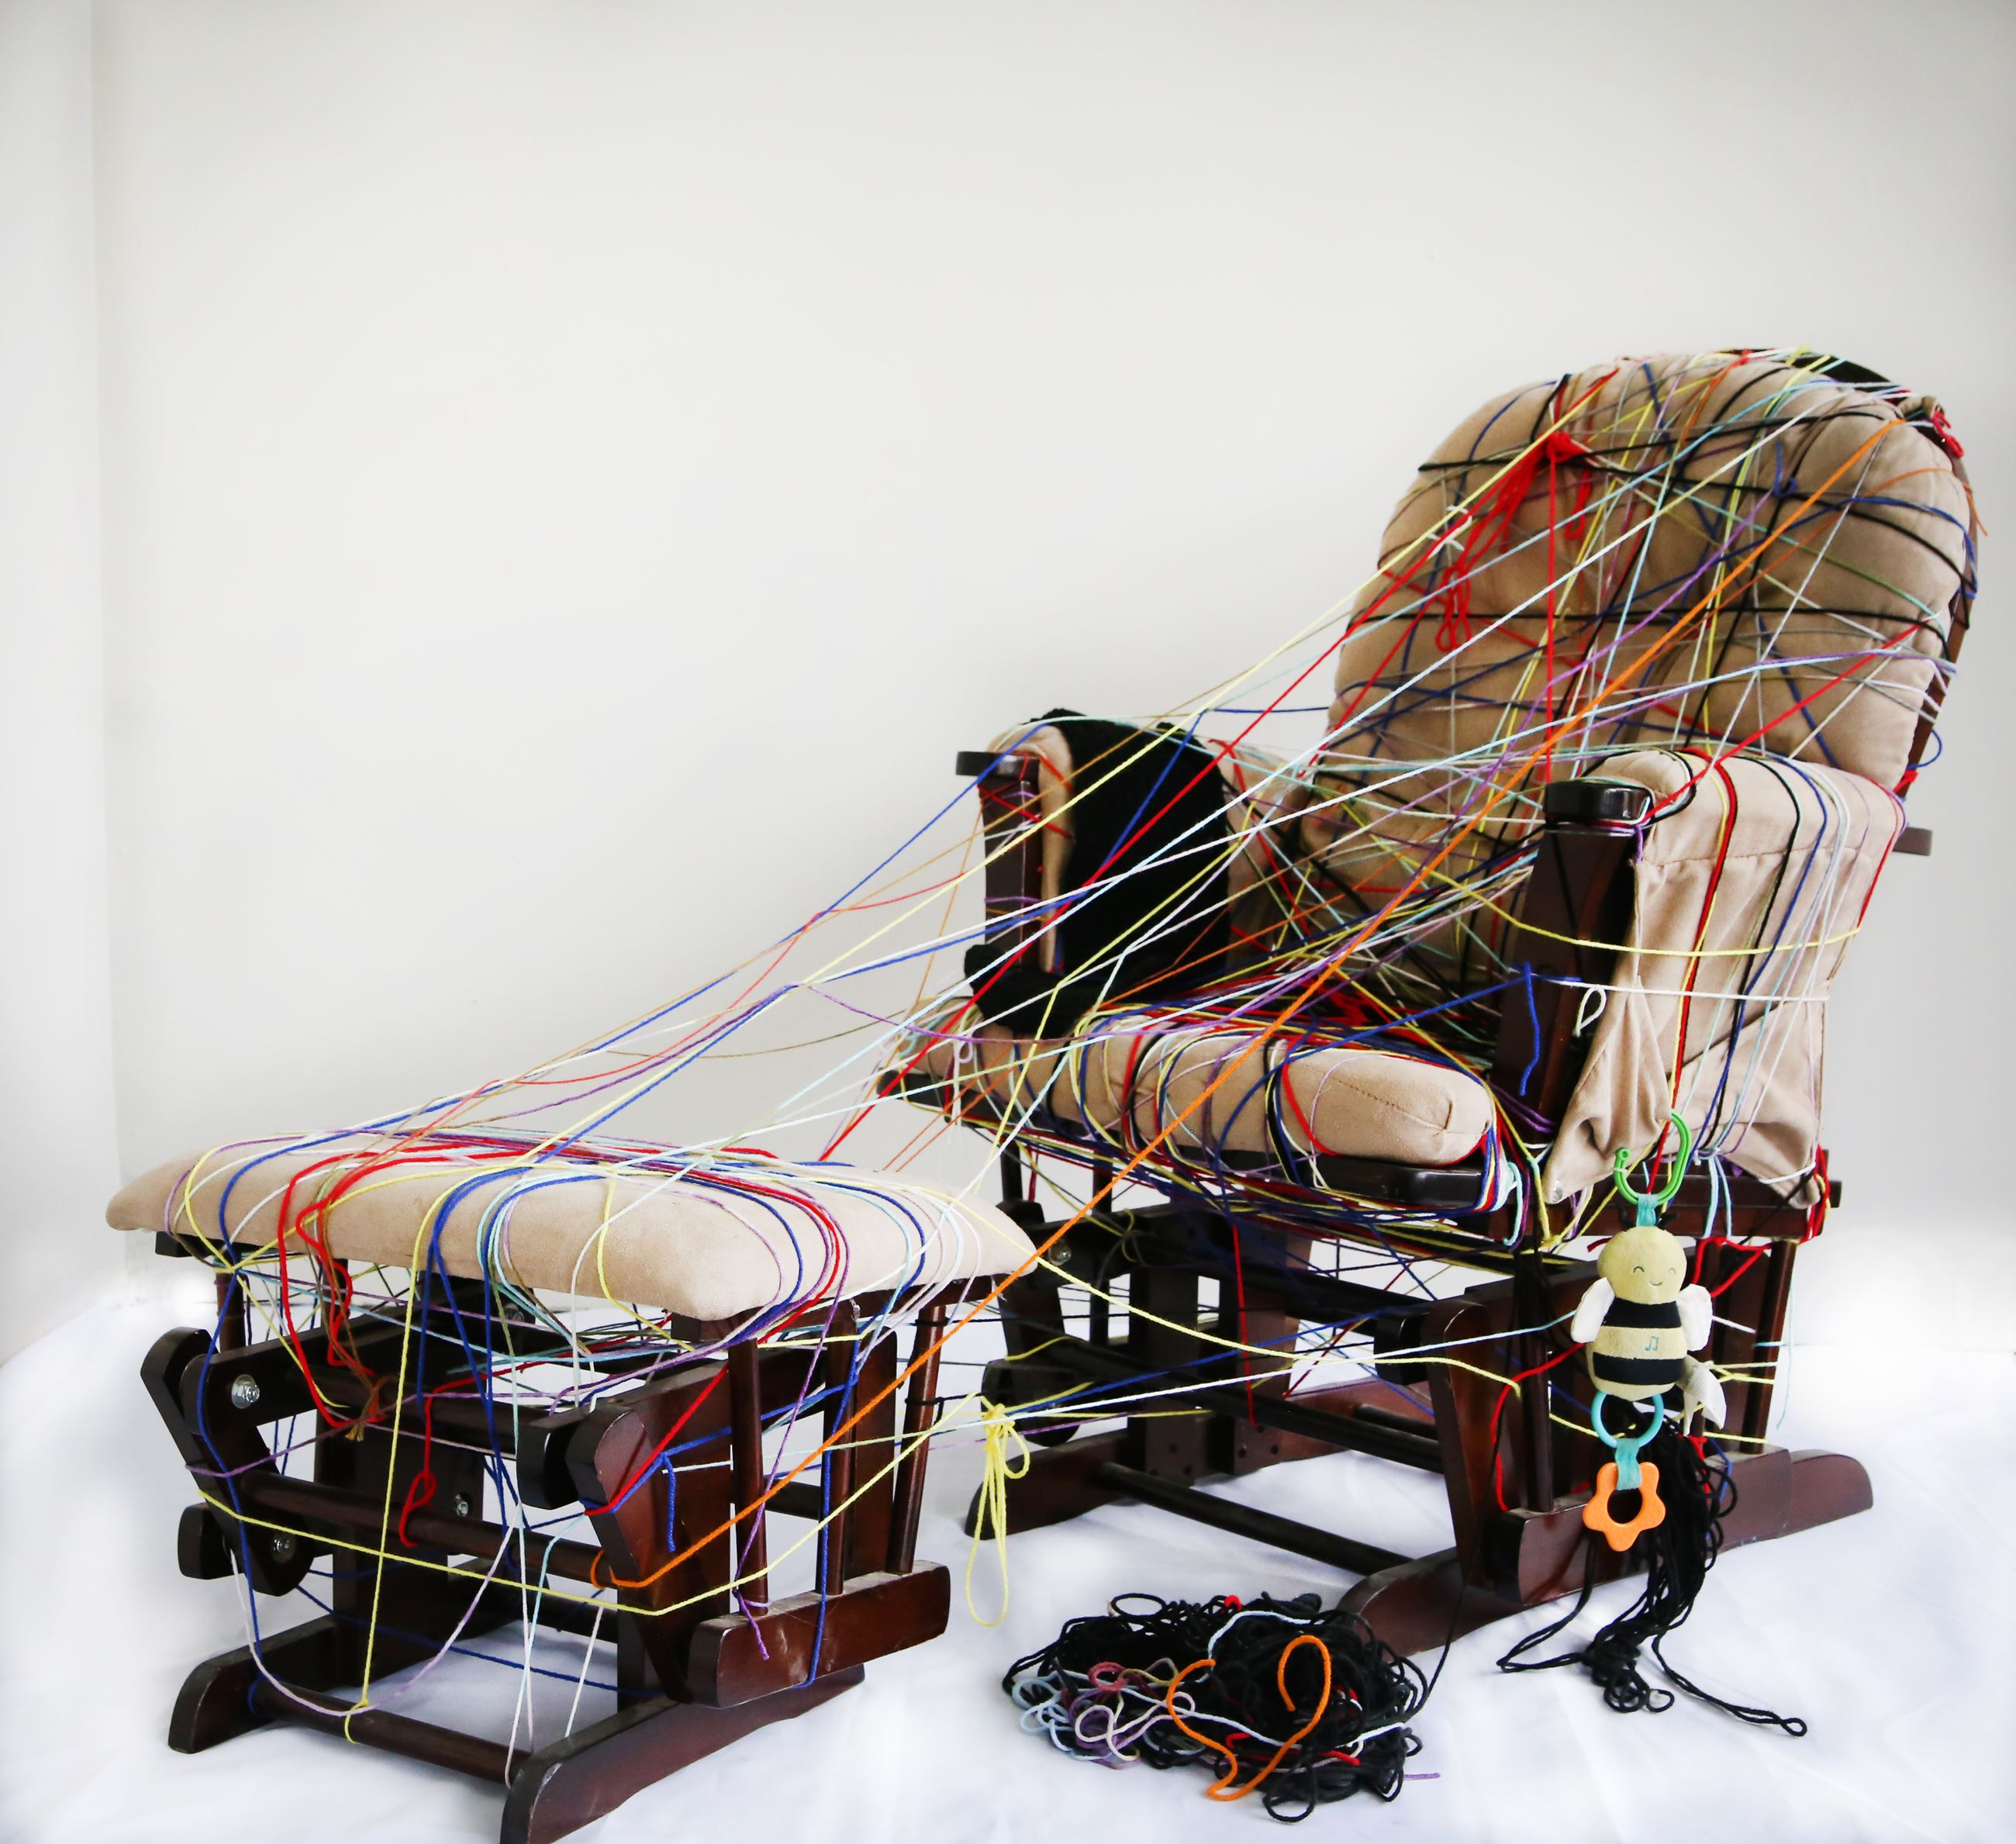 A lounging chair and ottoman covered in strings and children's toys.